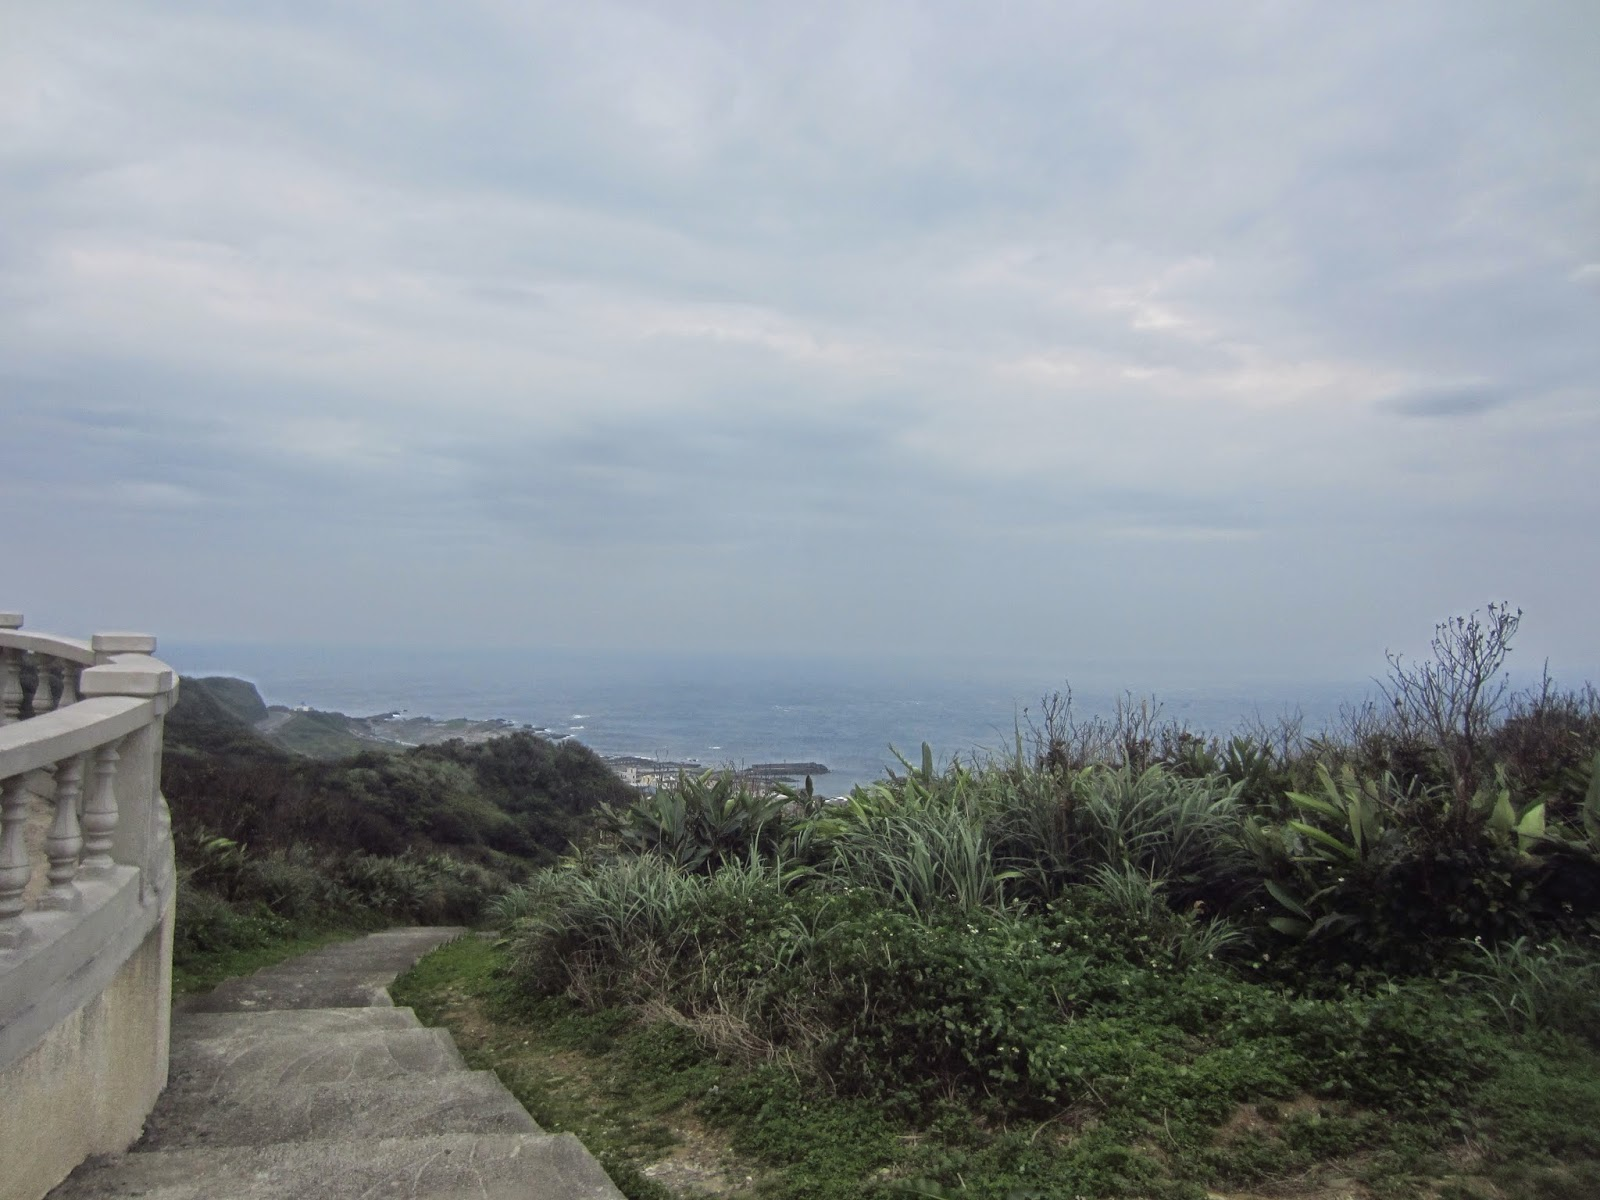 View of the Pacific Ocean from Sandiaoling Lighthouse in Fulong, Taiwan